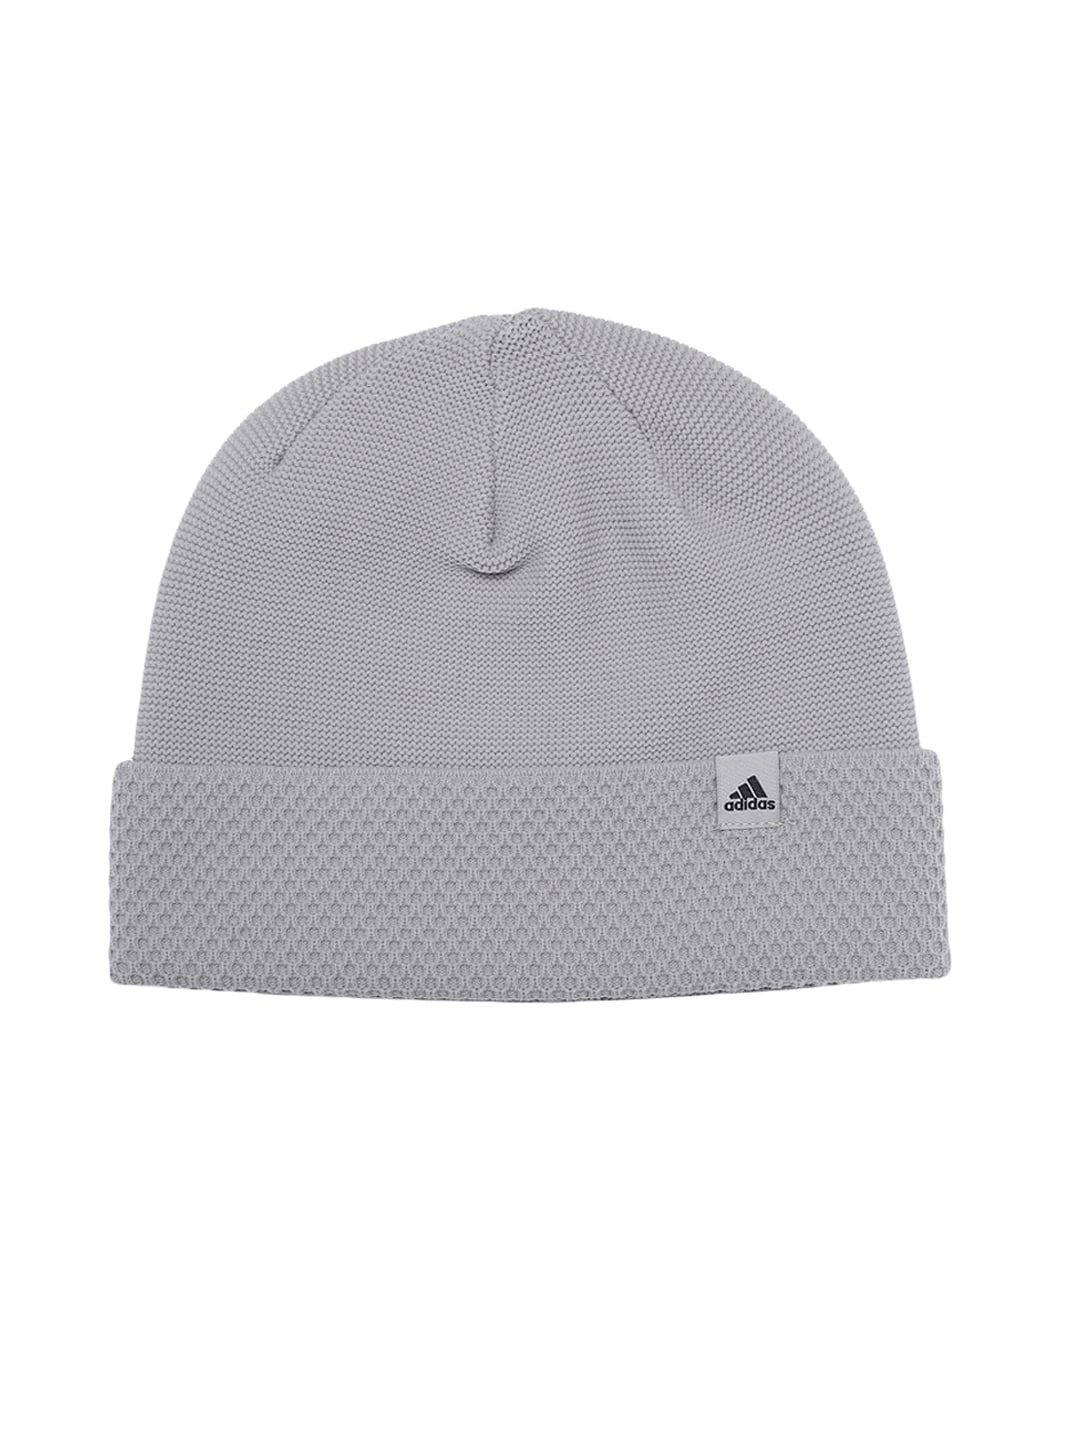 7fd78f75b2139 Adidas Cap - Buy Adidas Caps for Women   Girls Online